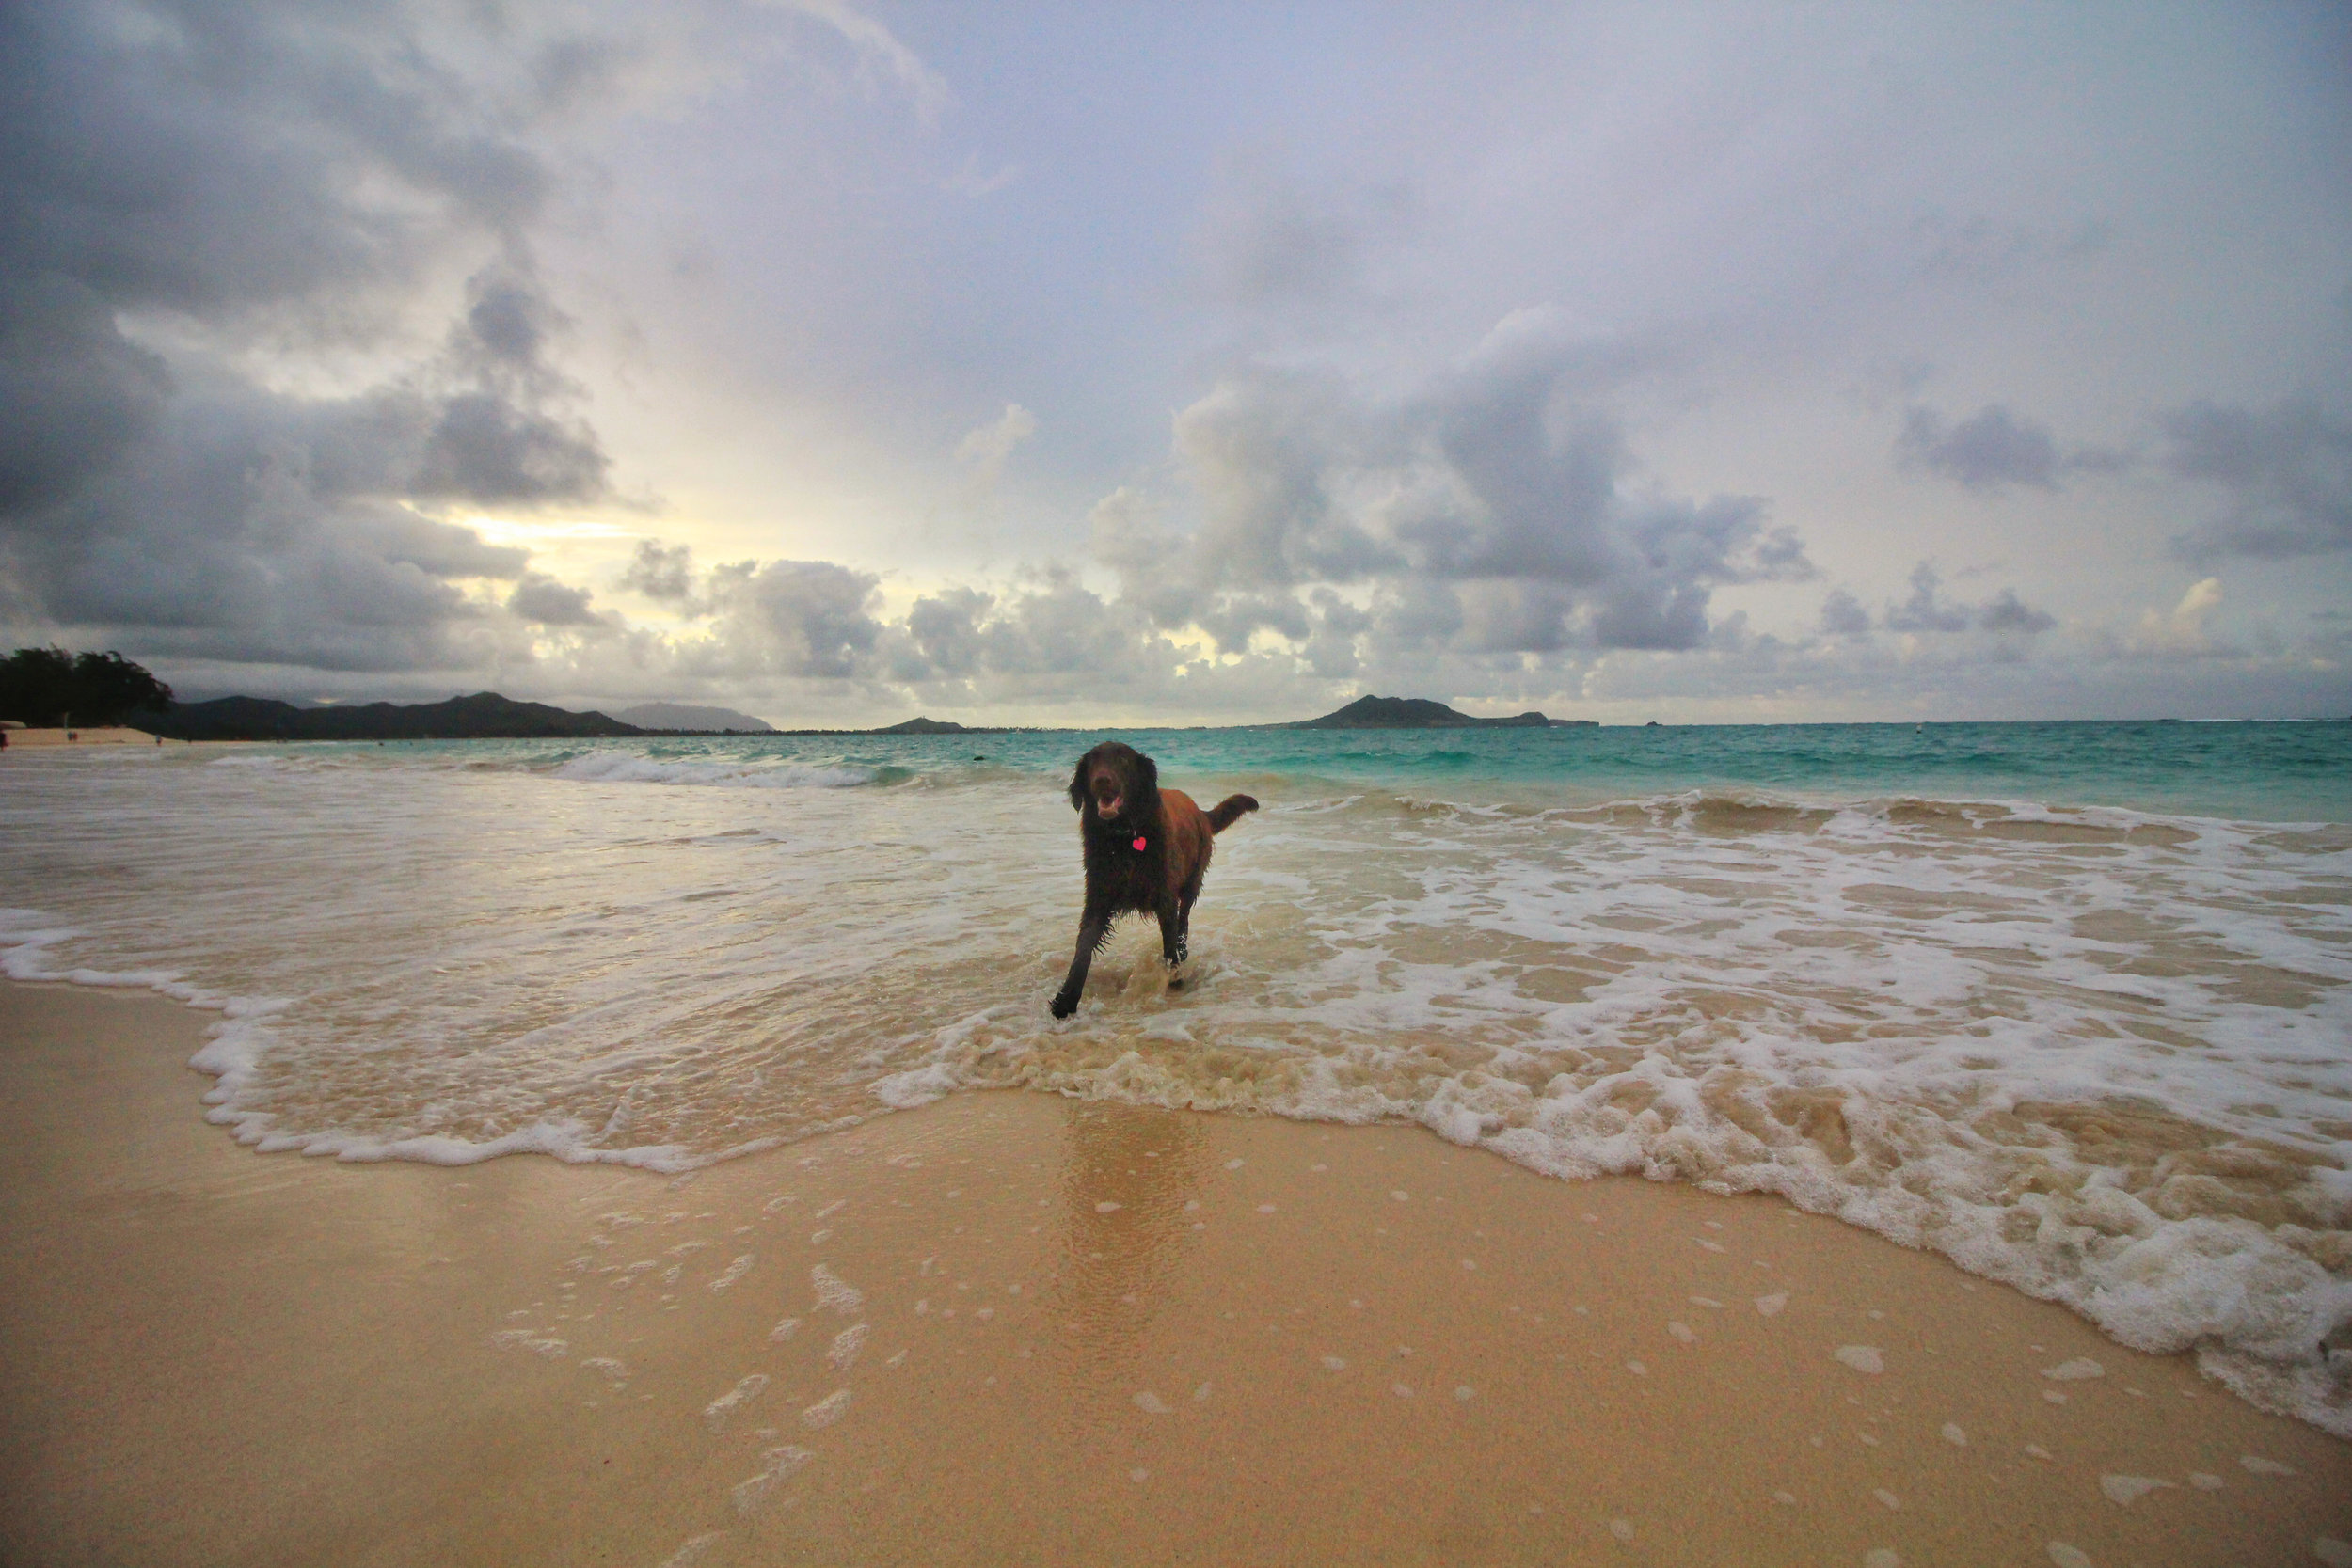 Dog got in my way of the sunset at Lanikai beach.